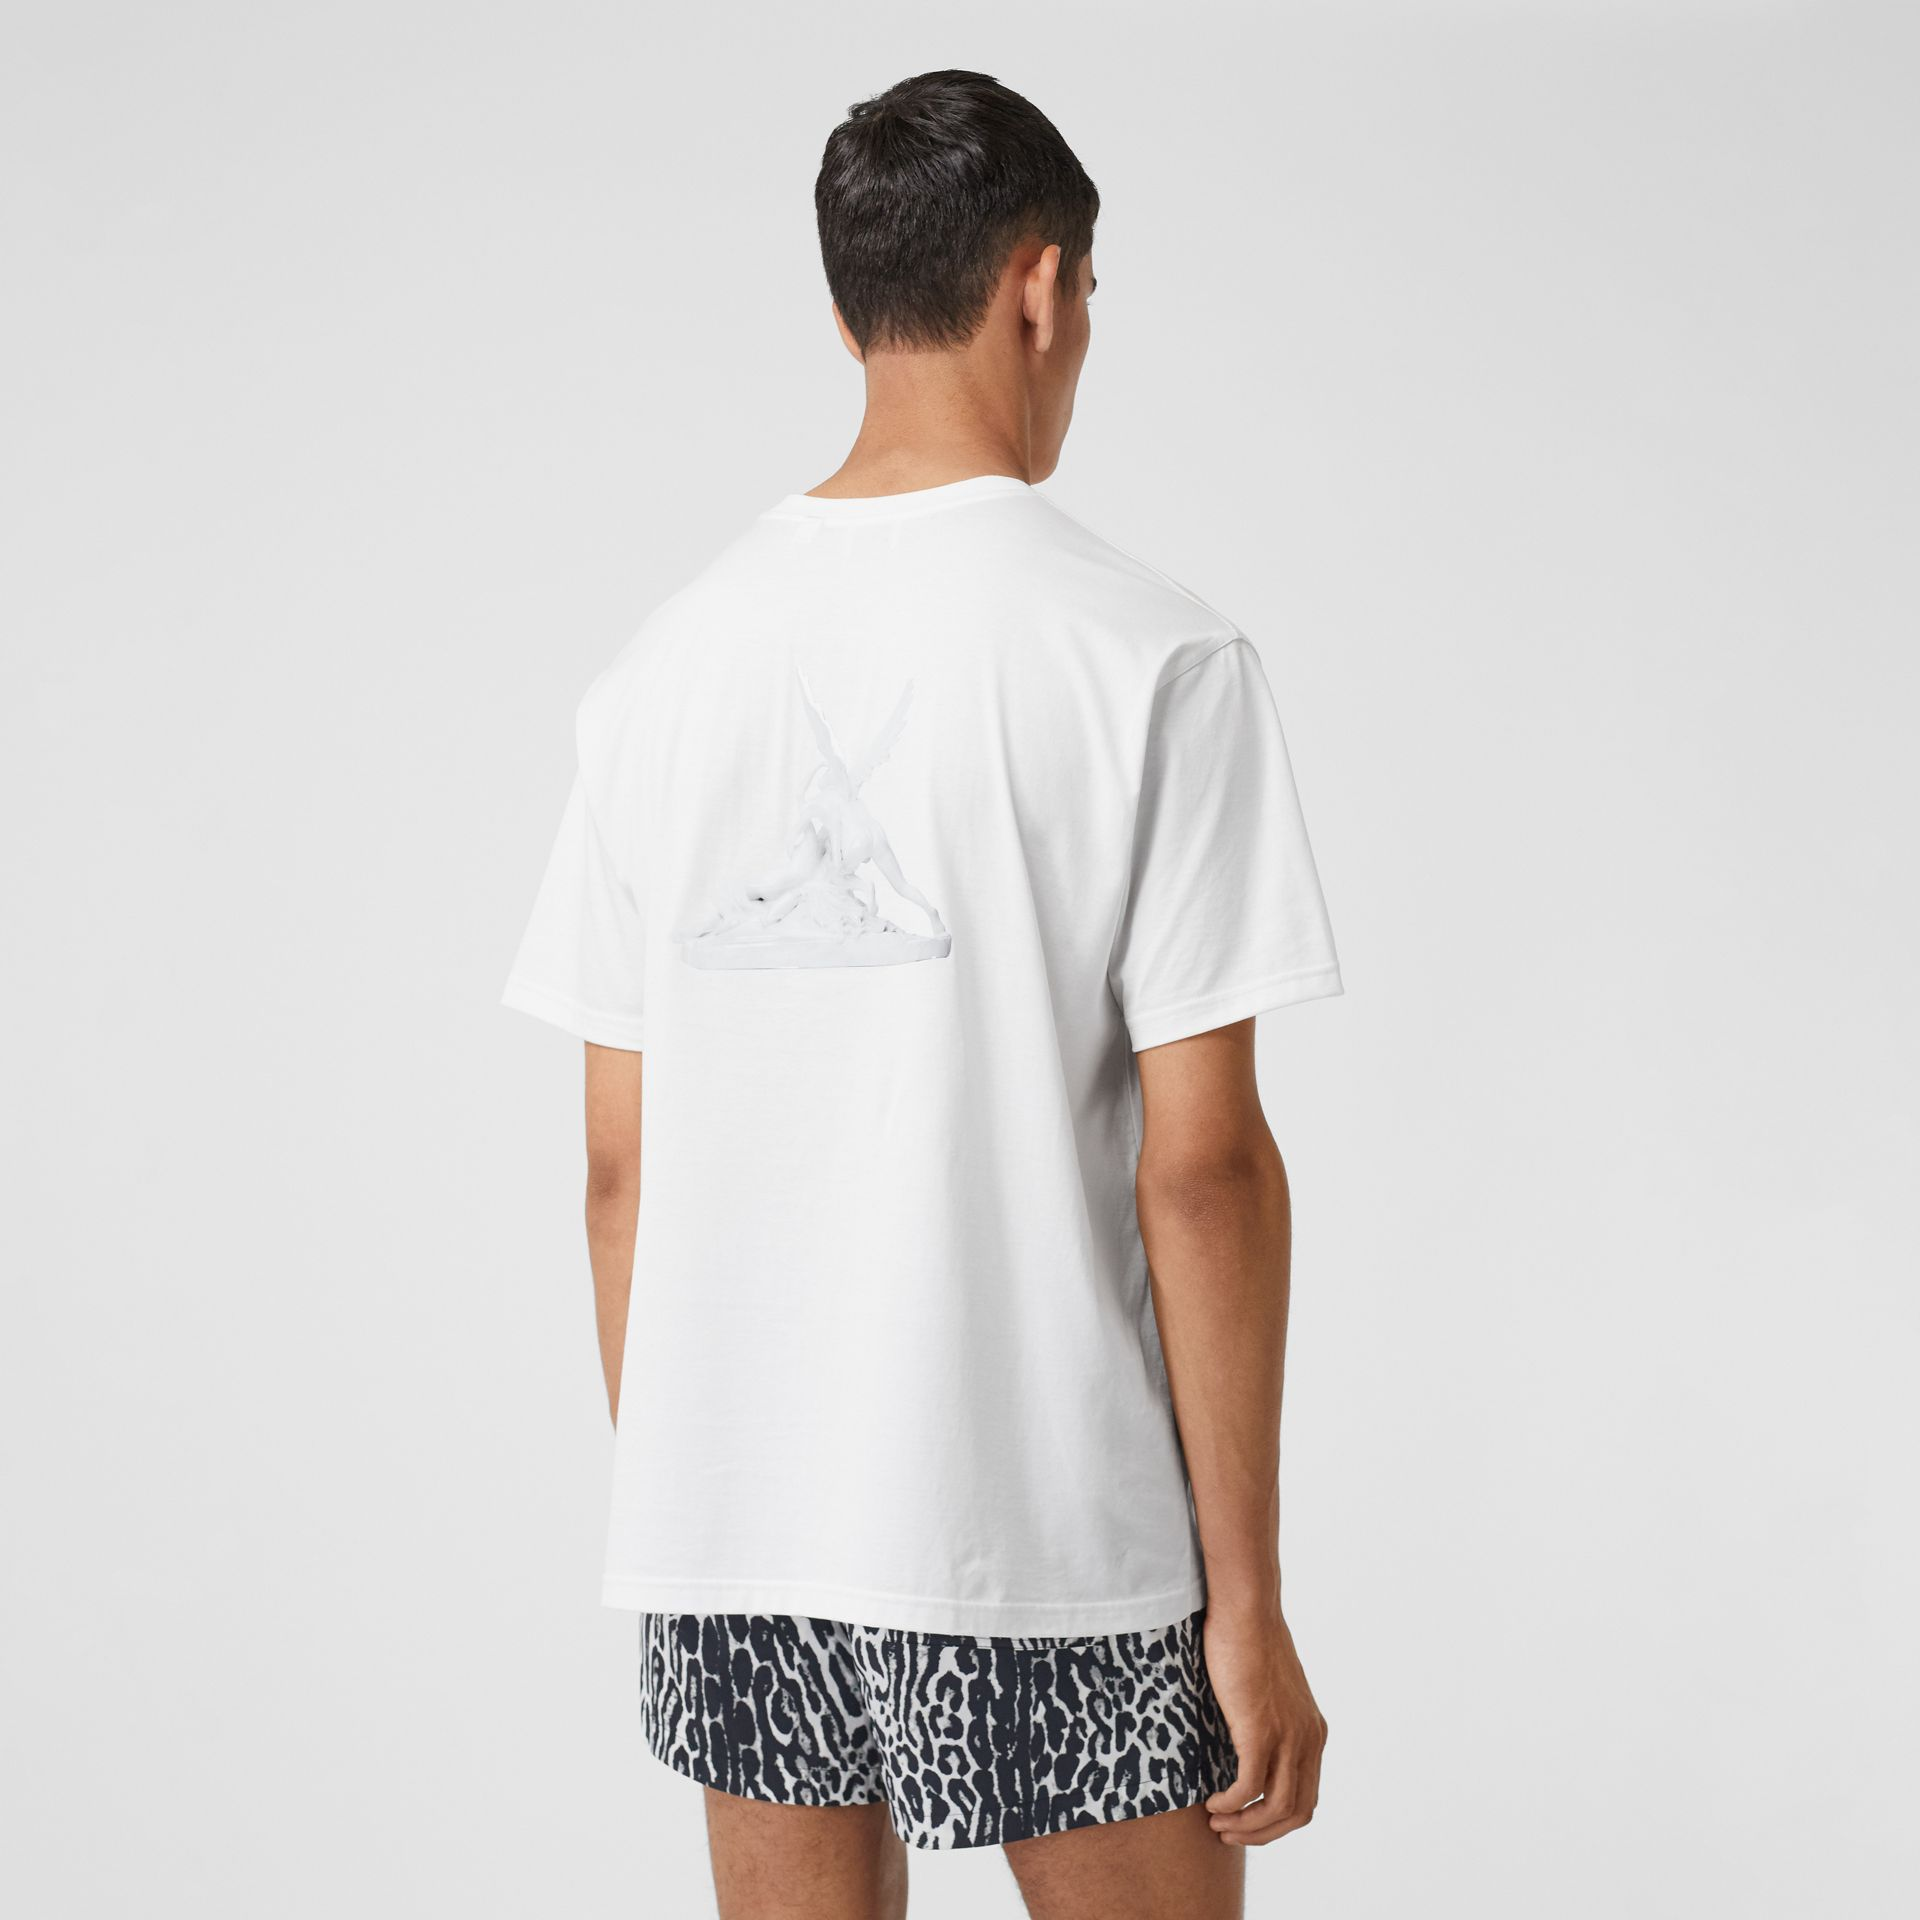 Cupid Print Cotton Oversized T-shirt in White - Men | Burberry - gallery image 2